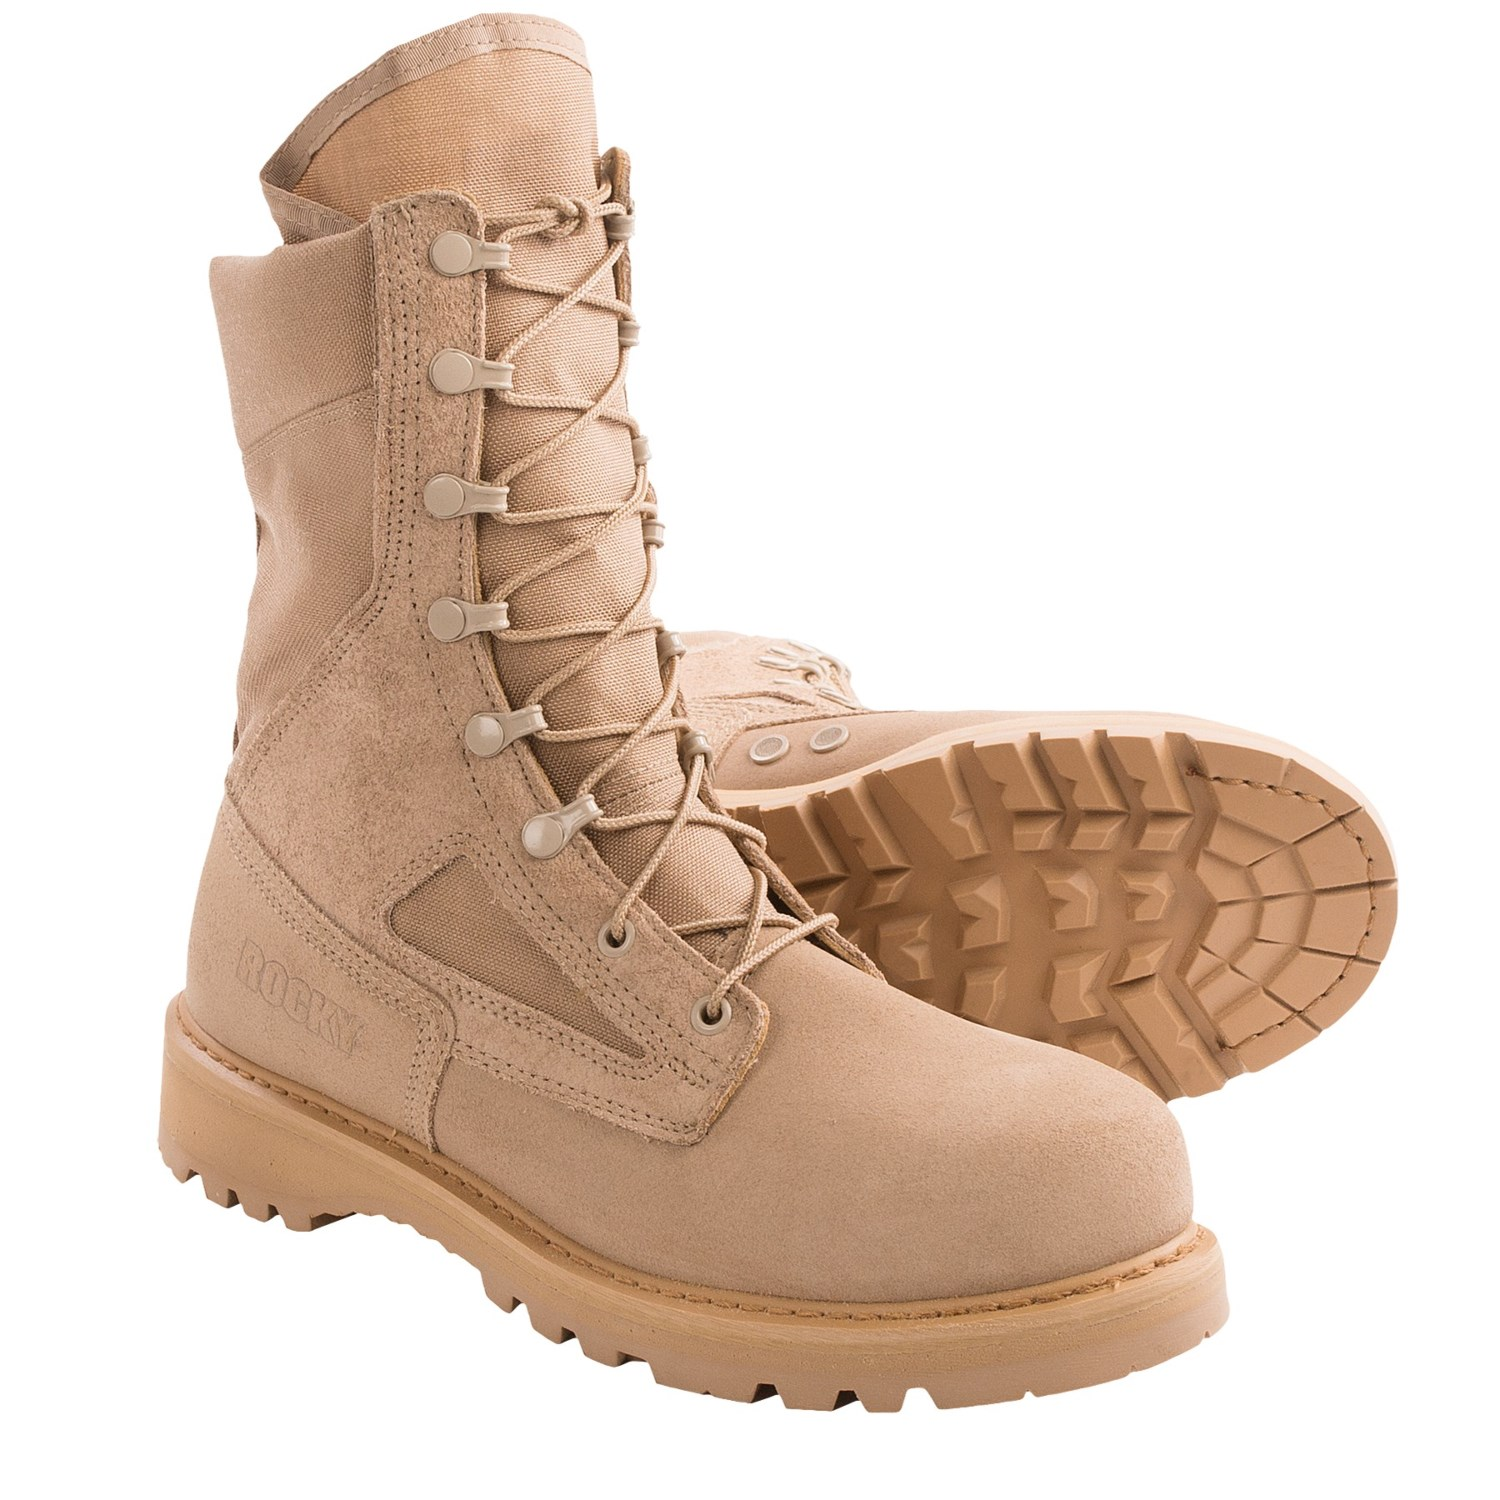 Women shoes online. Where can you buy steel toe boots